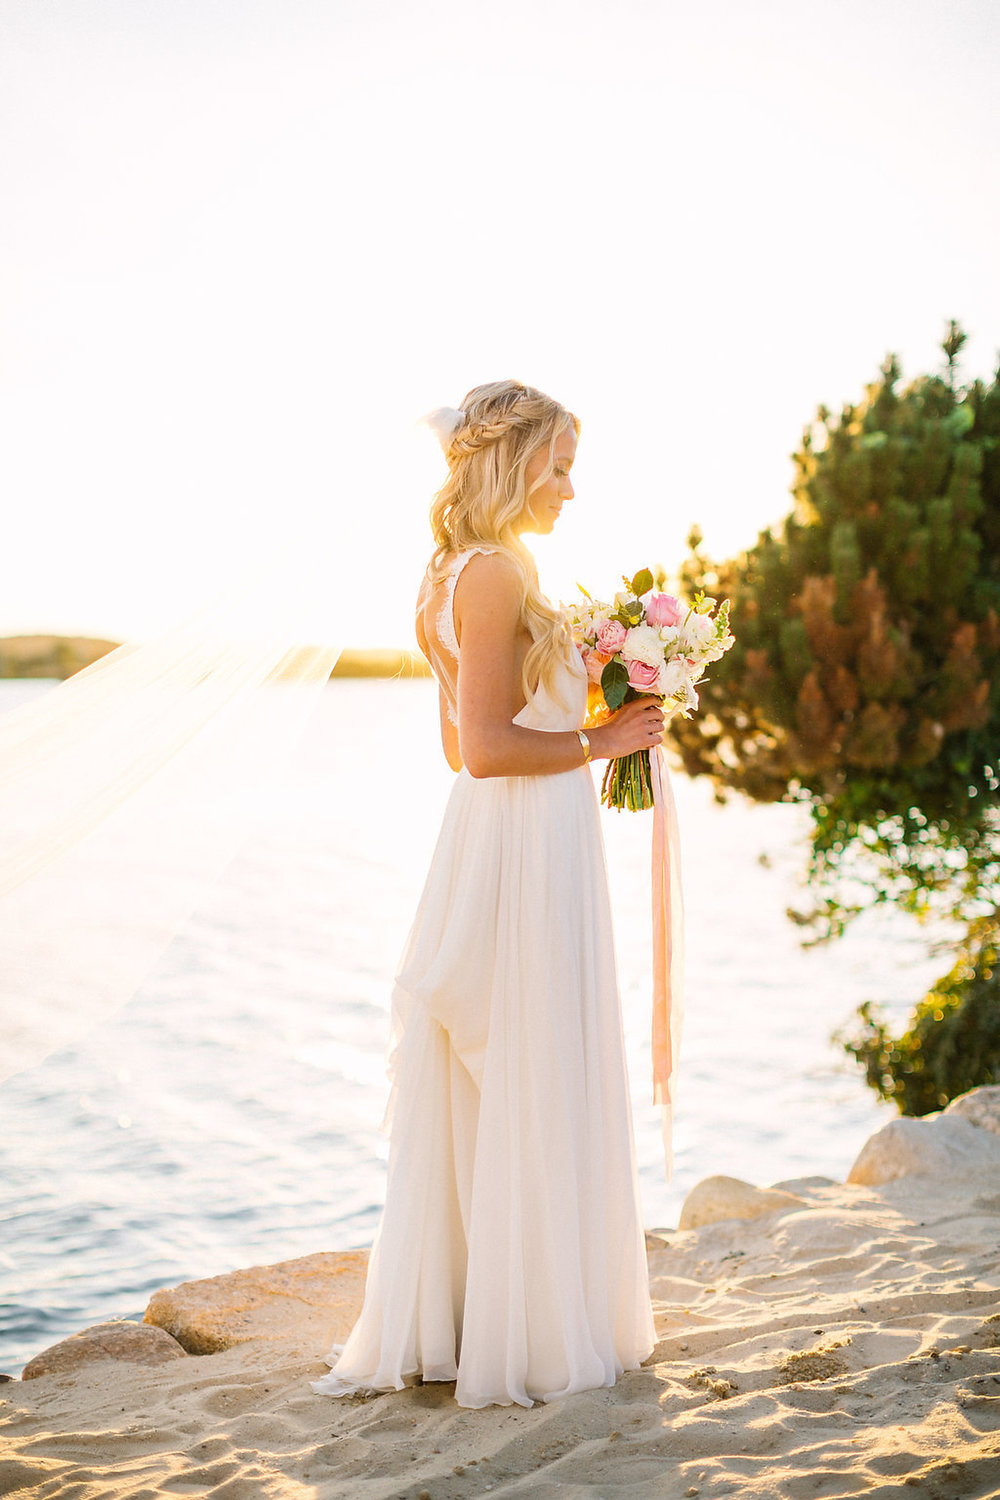 THE SURF LODGE WEDDING_BETSI EWING STUDIO_122.JPG